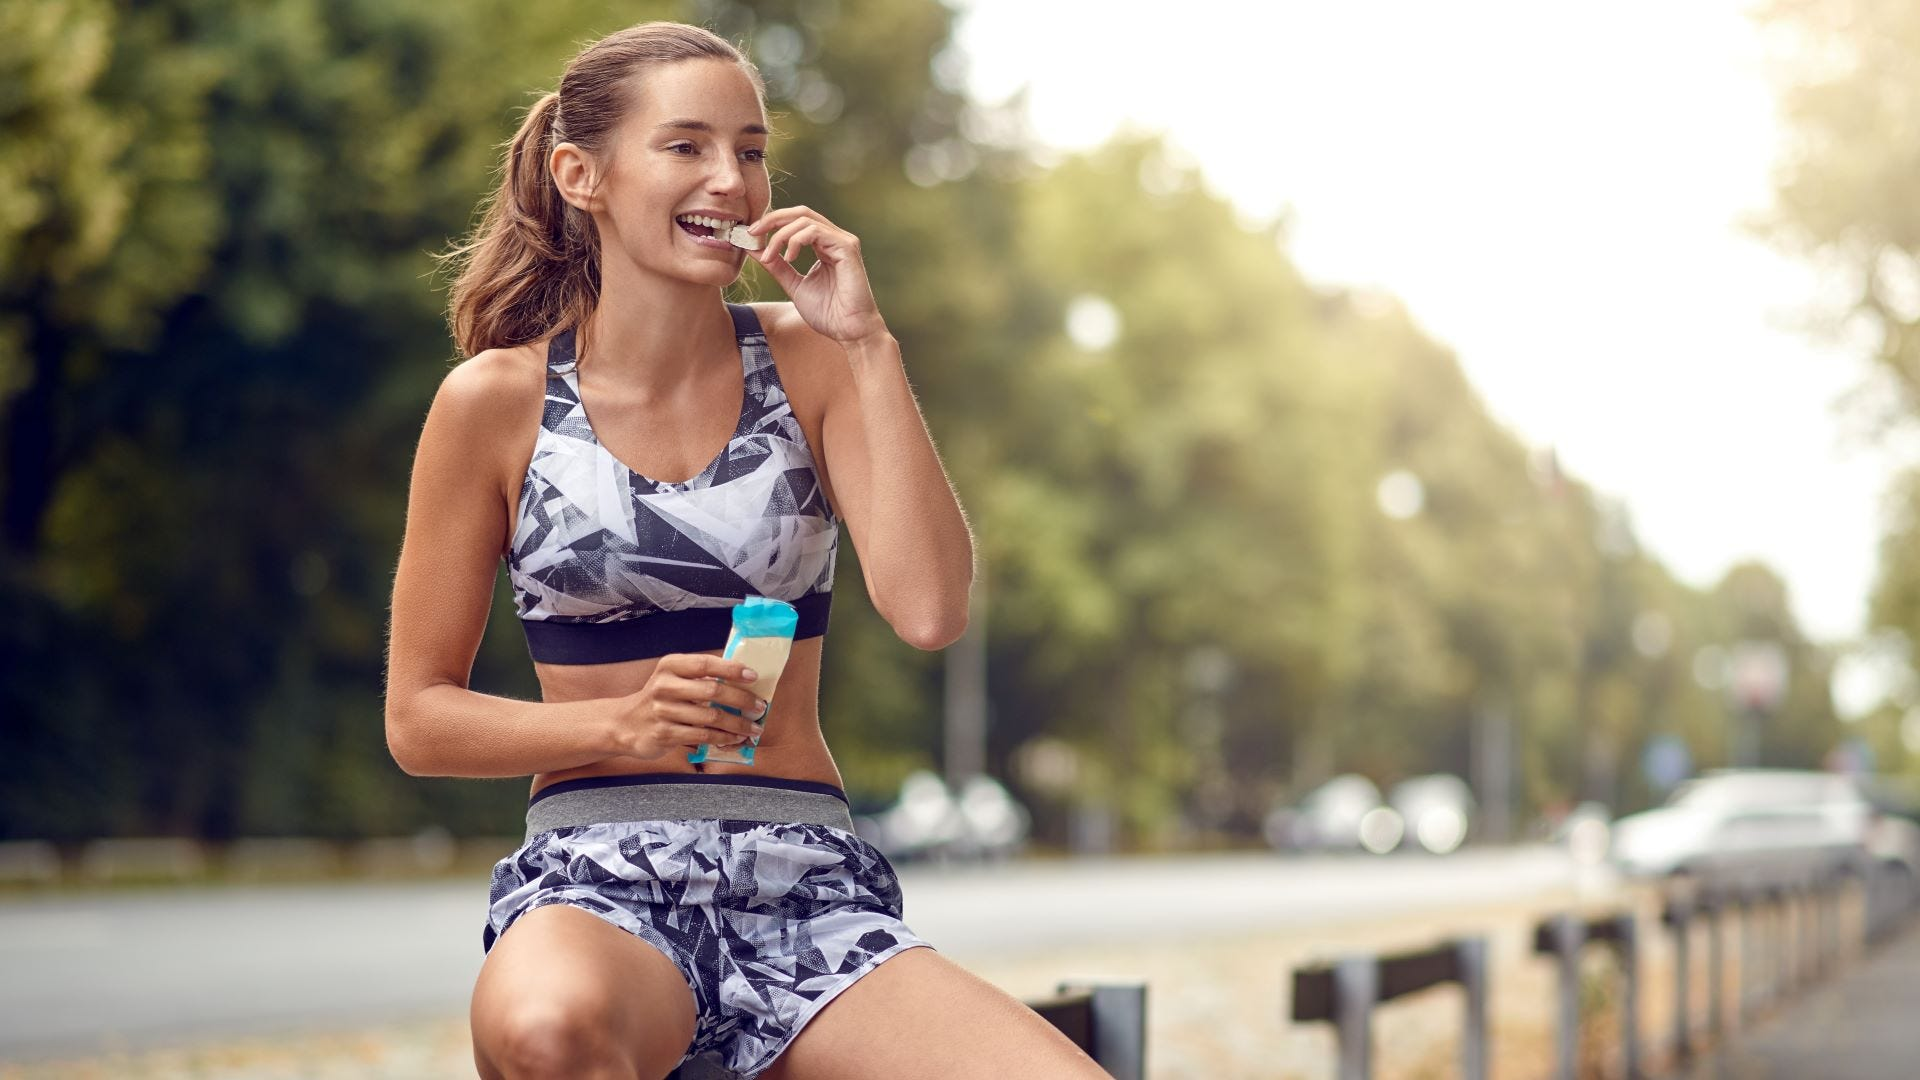 A woman in workout clothes eating a protein bar at a park.